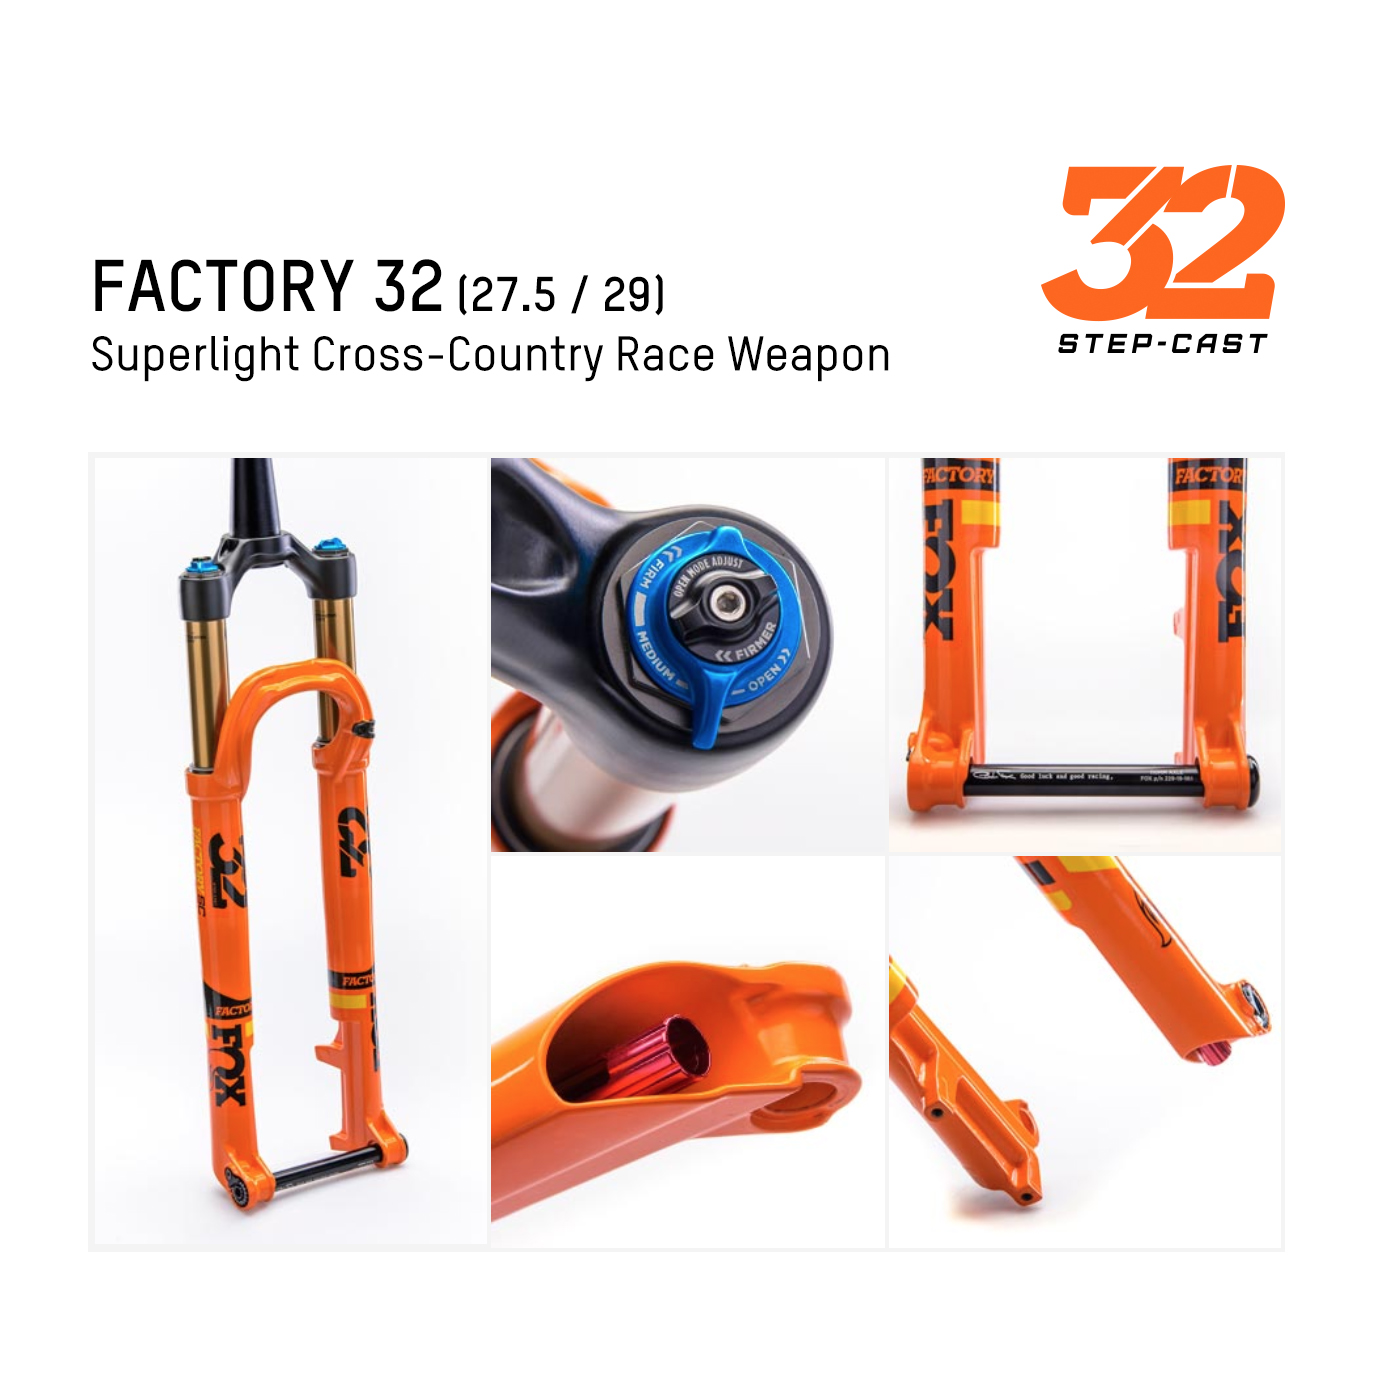 FOX  Factory 32 SC (Superlight Cross-Country Race Weapon)